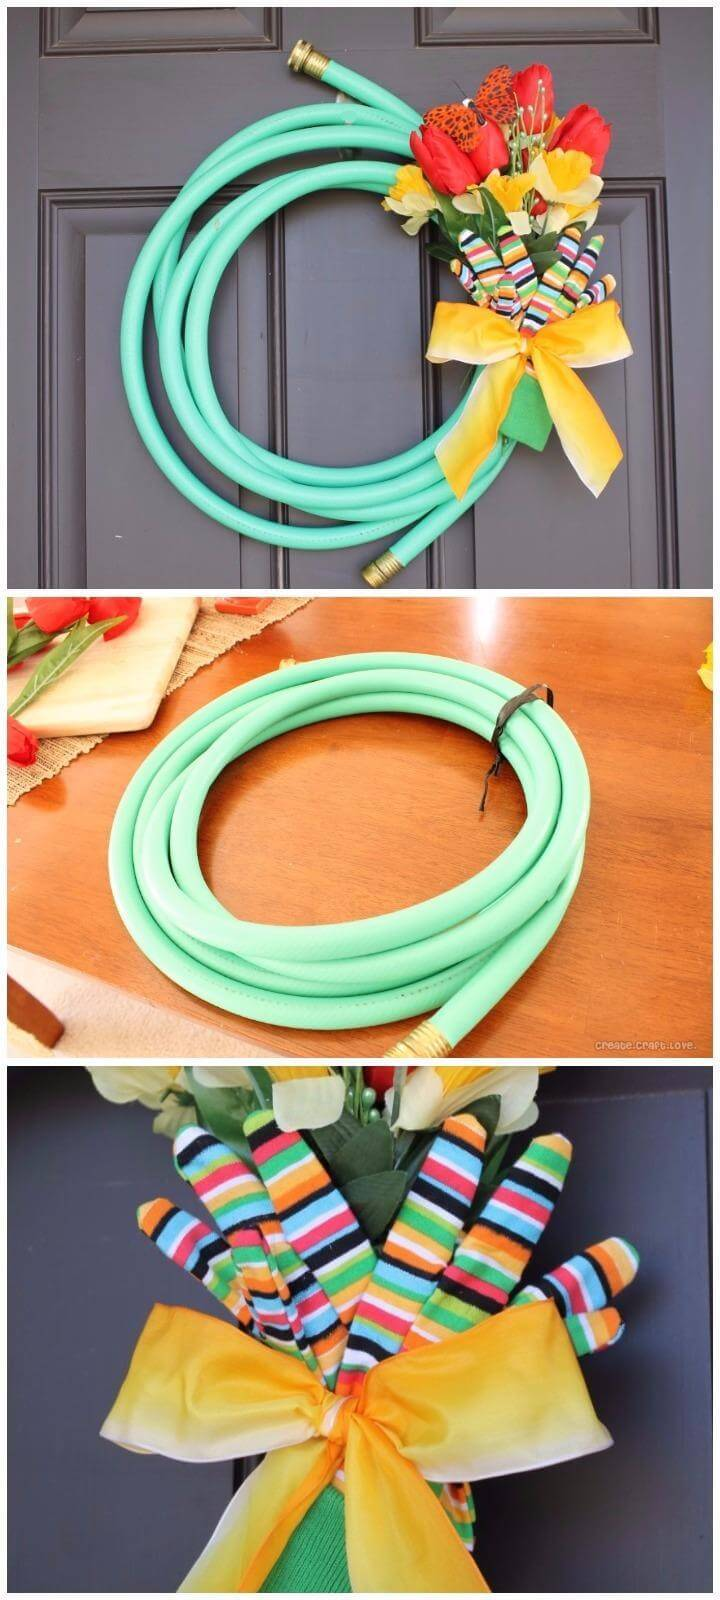 DIY Homemade Garden Hose Spring Wreath